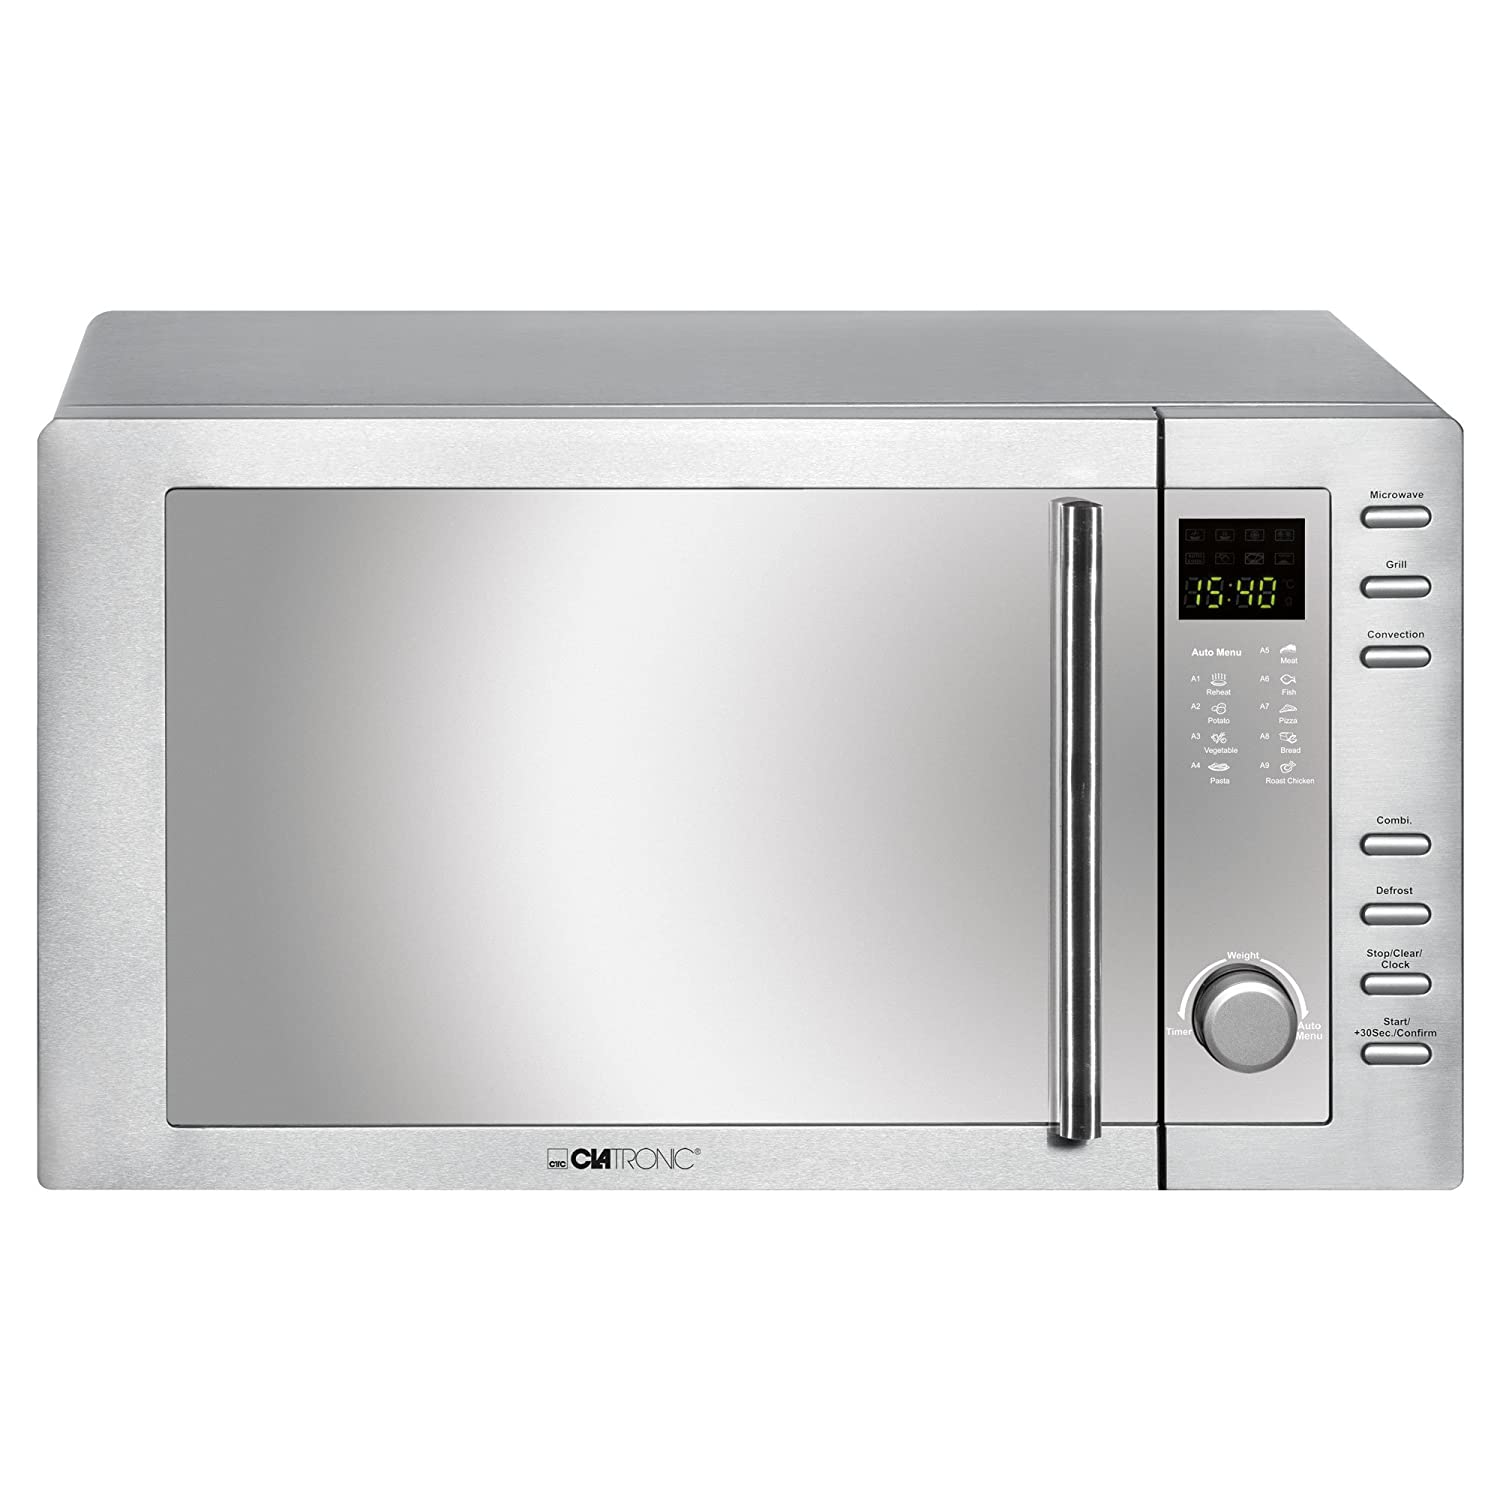 Clatronic MWG 775 H Combined Microwave Oven with Grill and Convection MWG775H